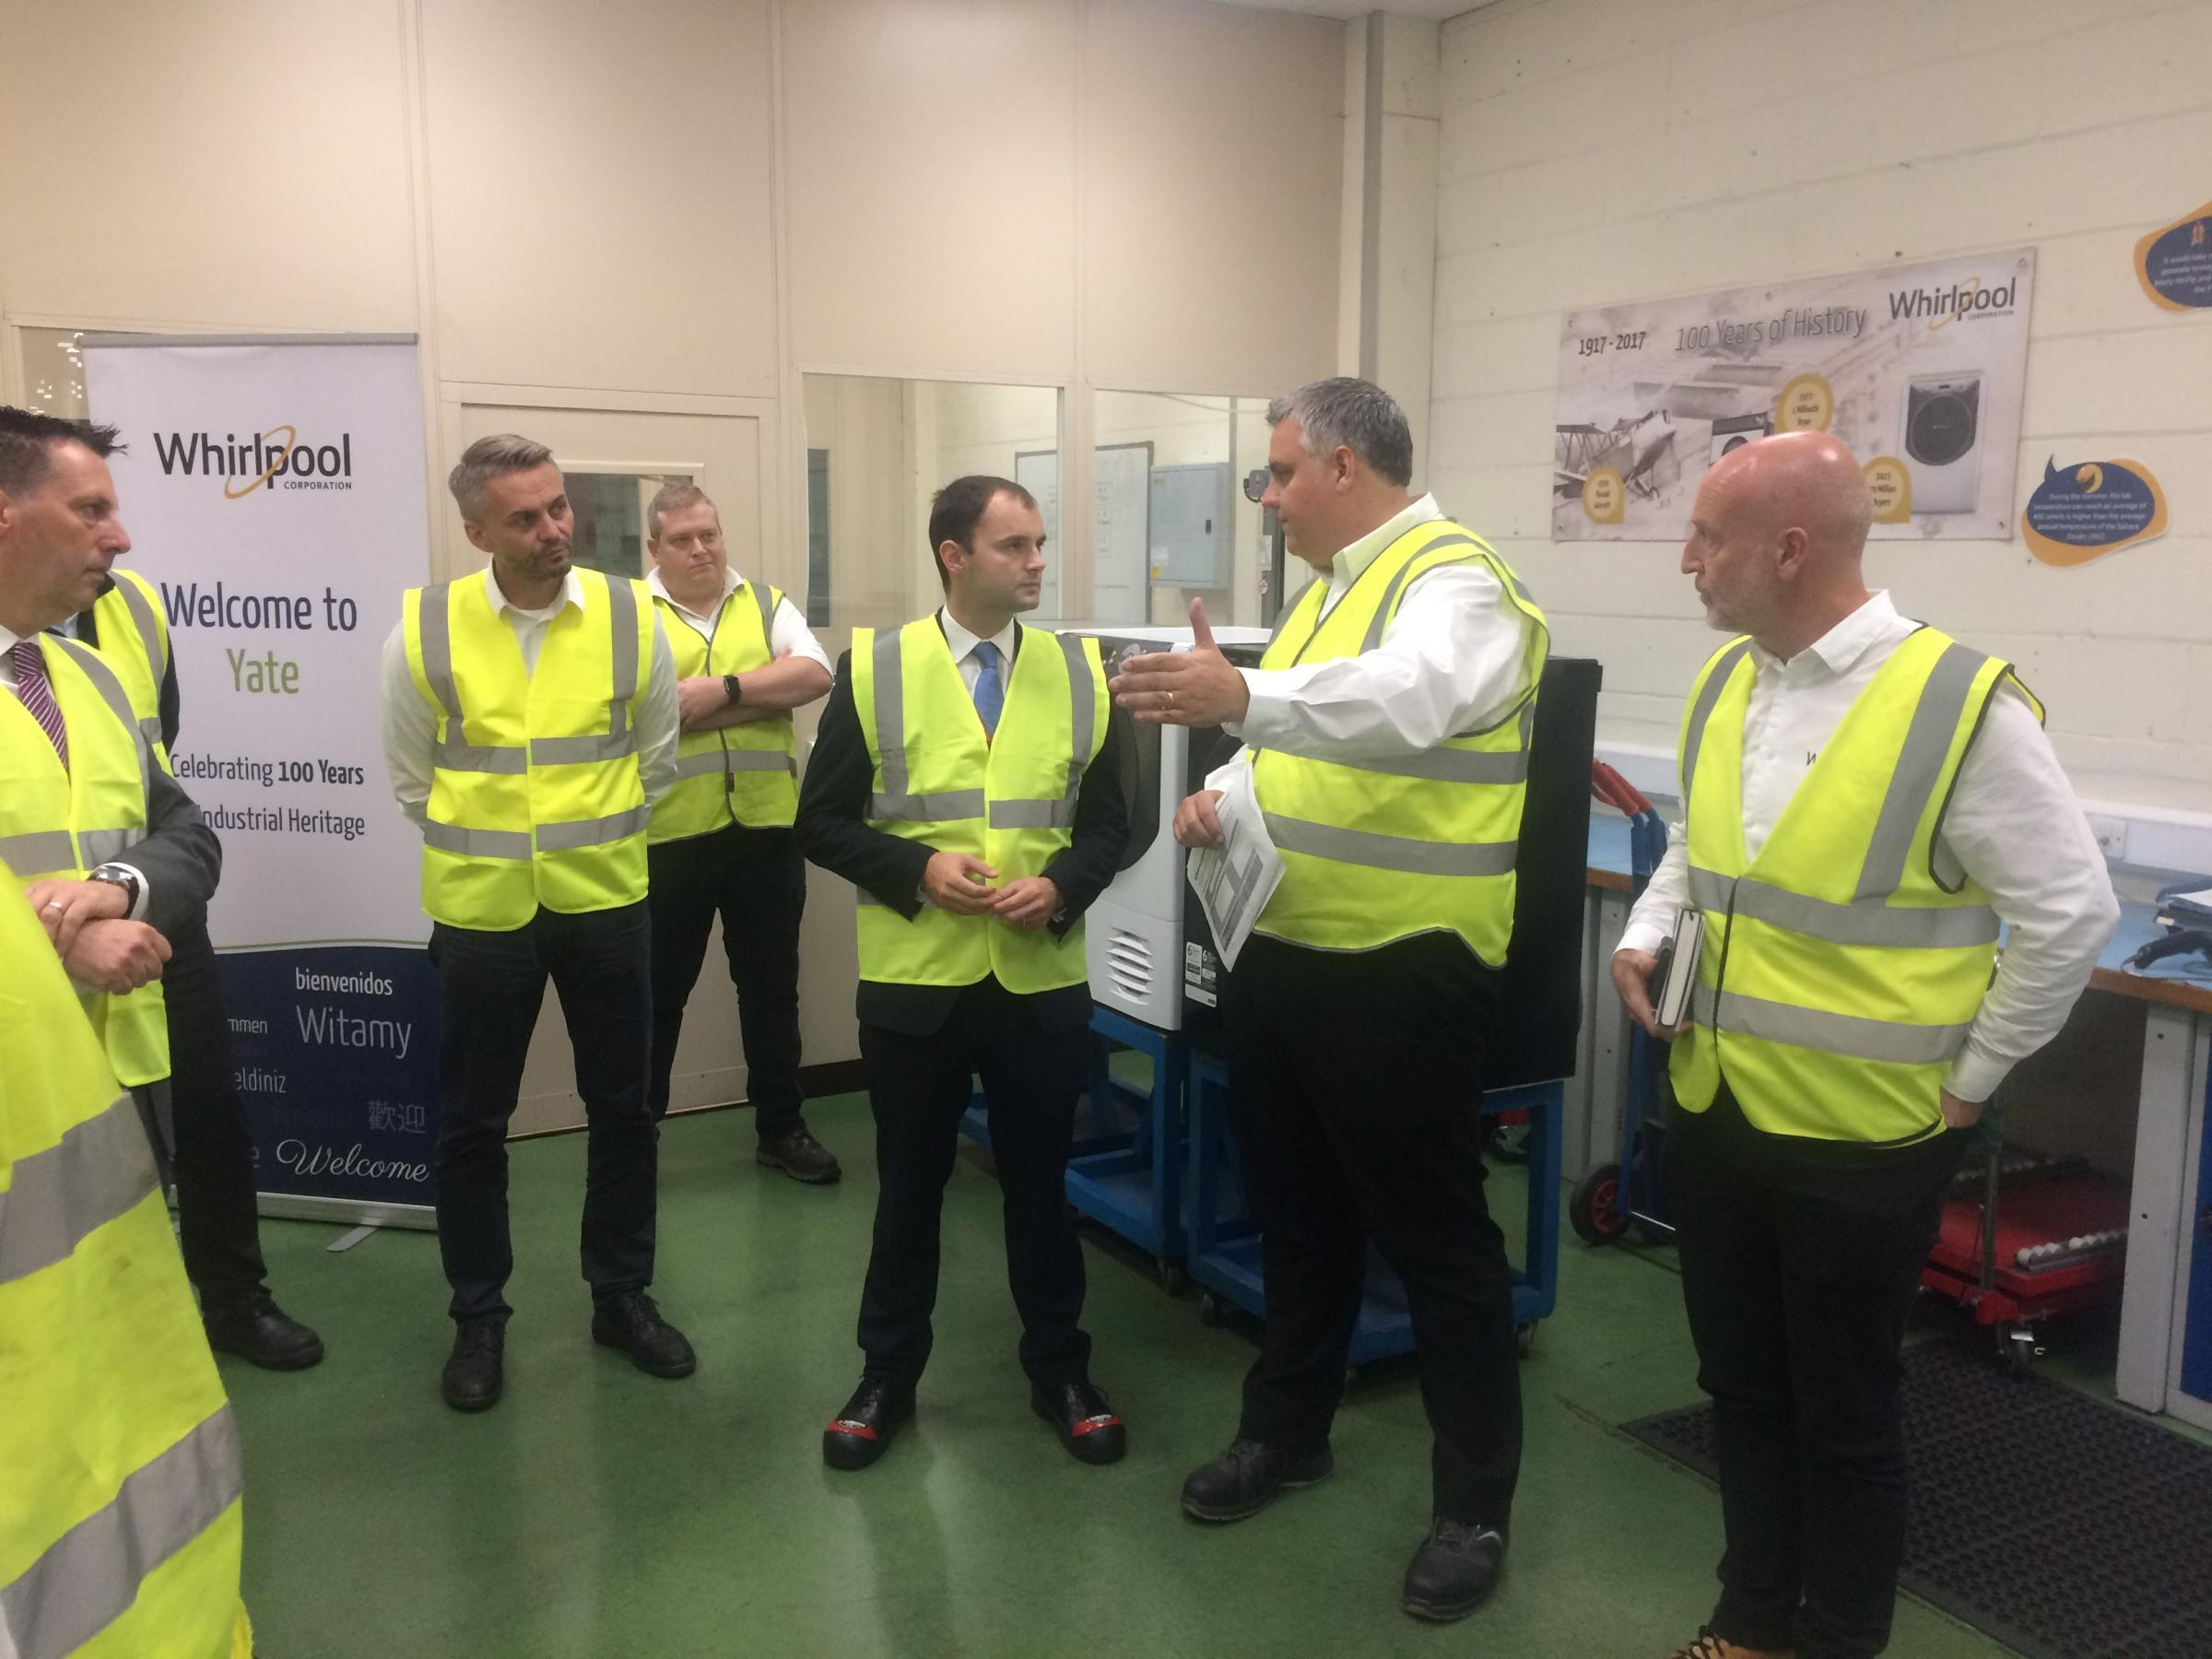 MP Luke Hall made a visit to South Gloucestershire business Whirlpool